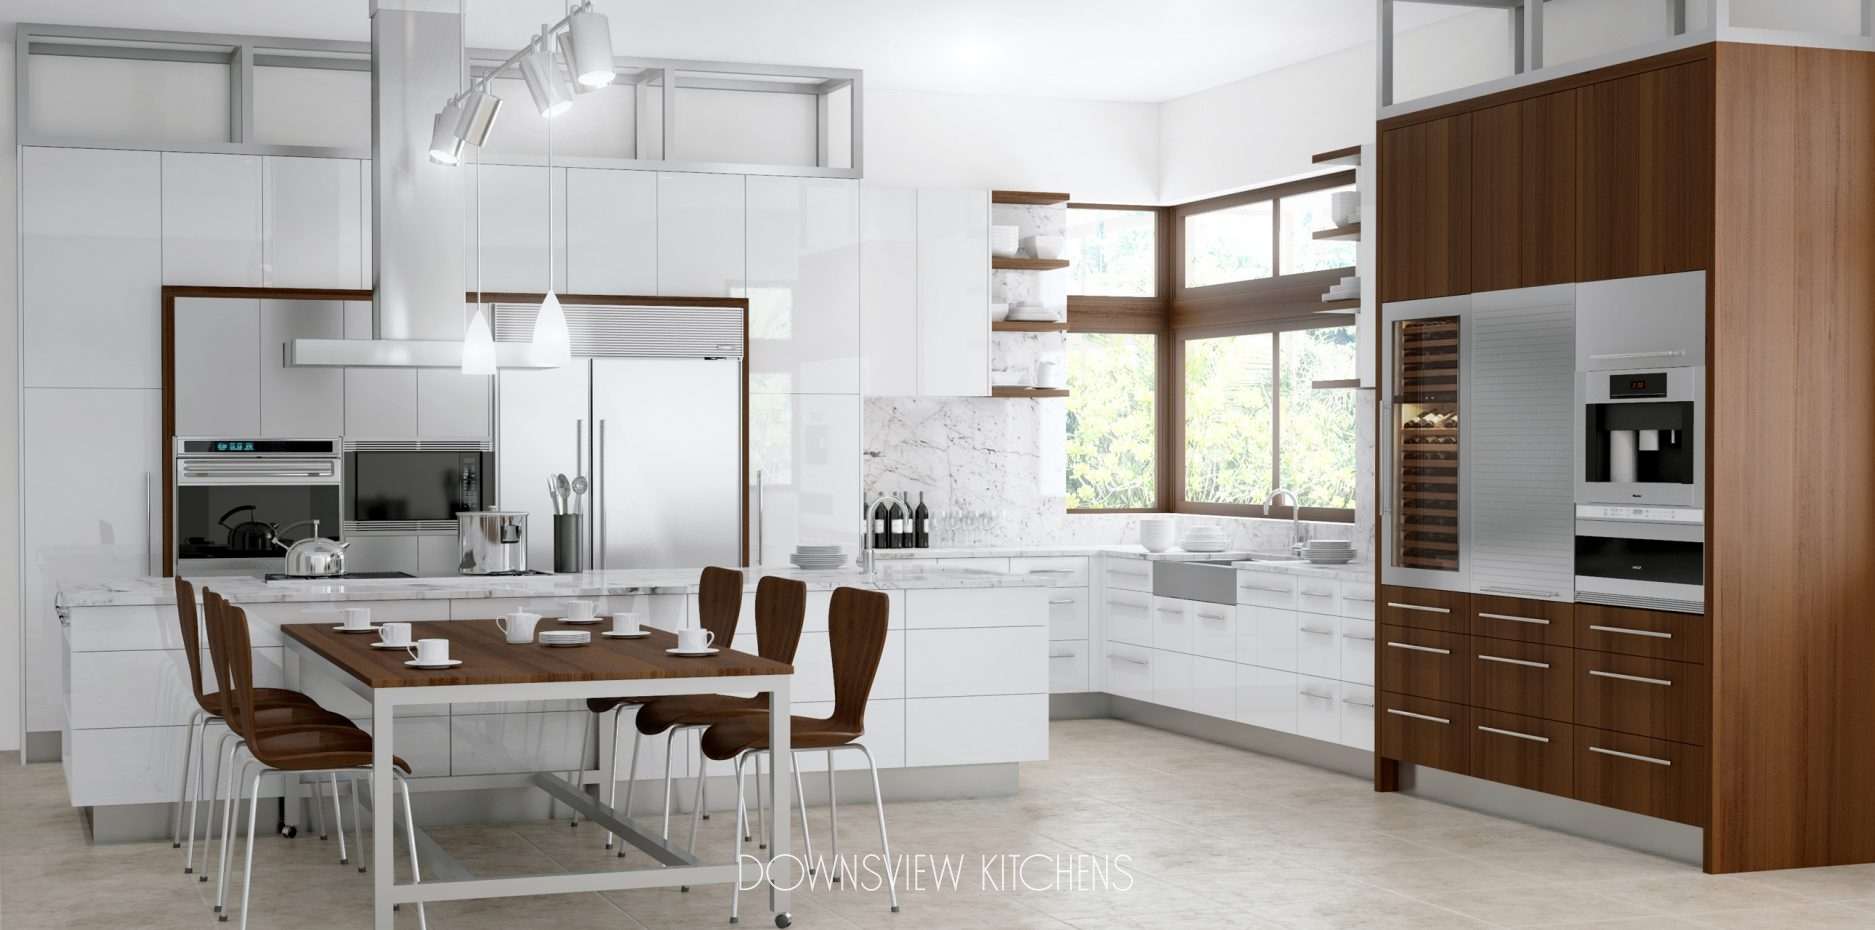 High Definition Downsview Kitchens And Fine Custom Cabinetry Manufacturers Kitchen